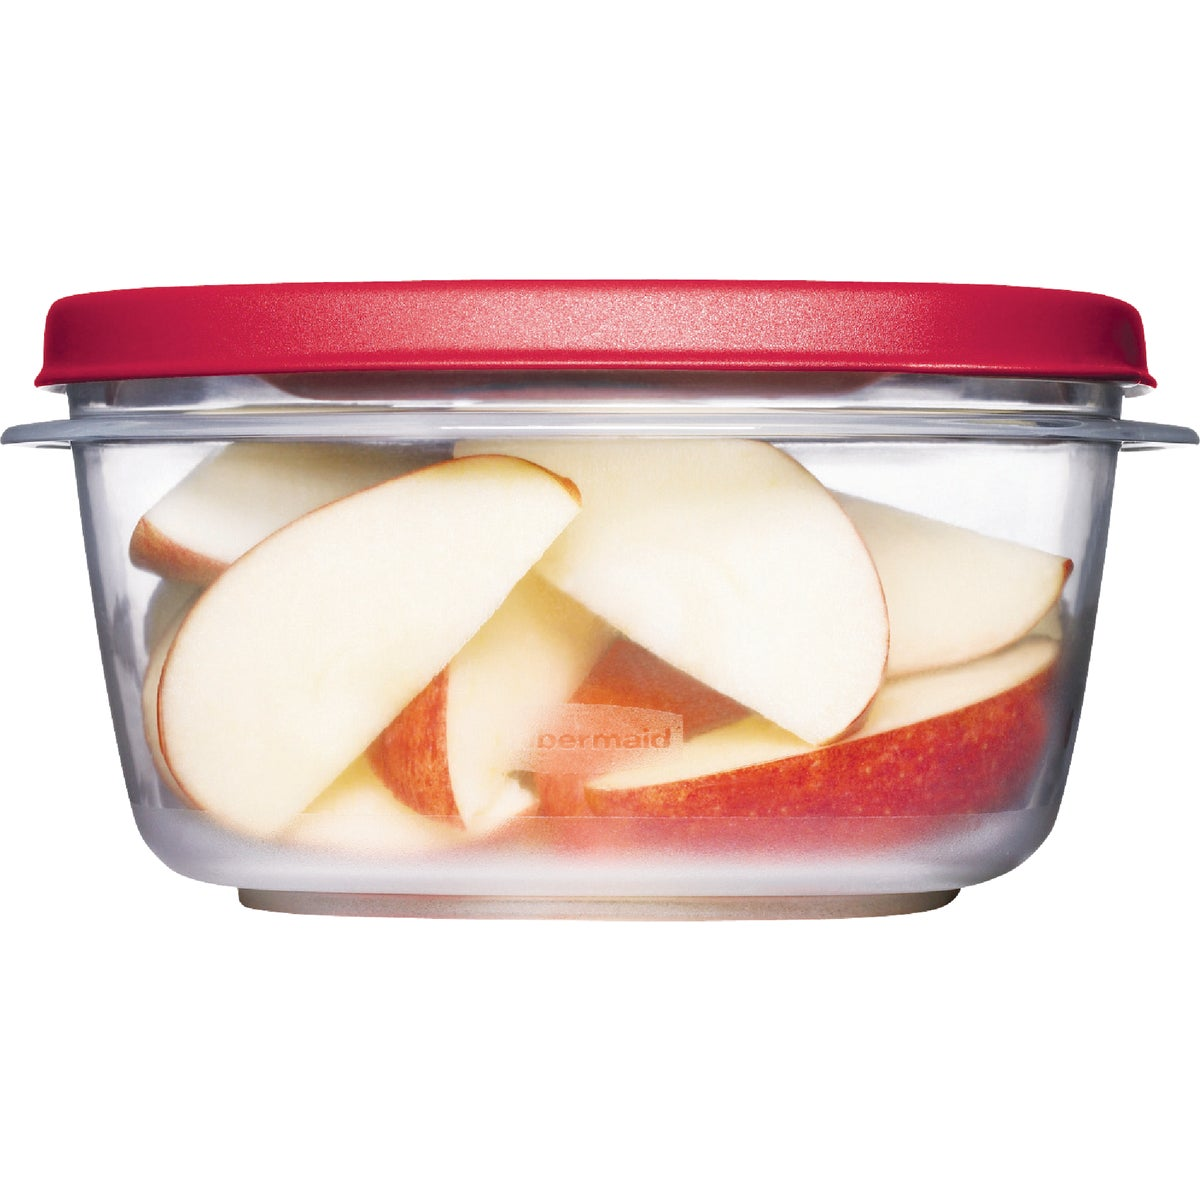 5 CUP FOOD CONTAINER - 1777087 by Rubbermaid Home